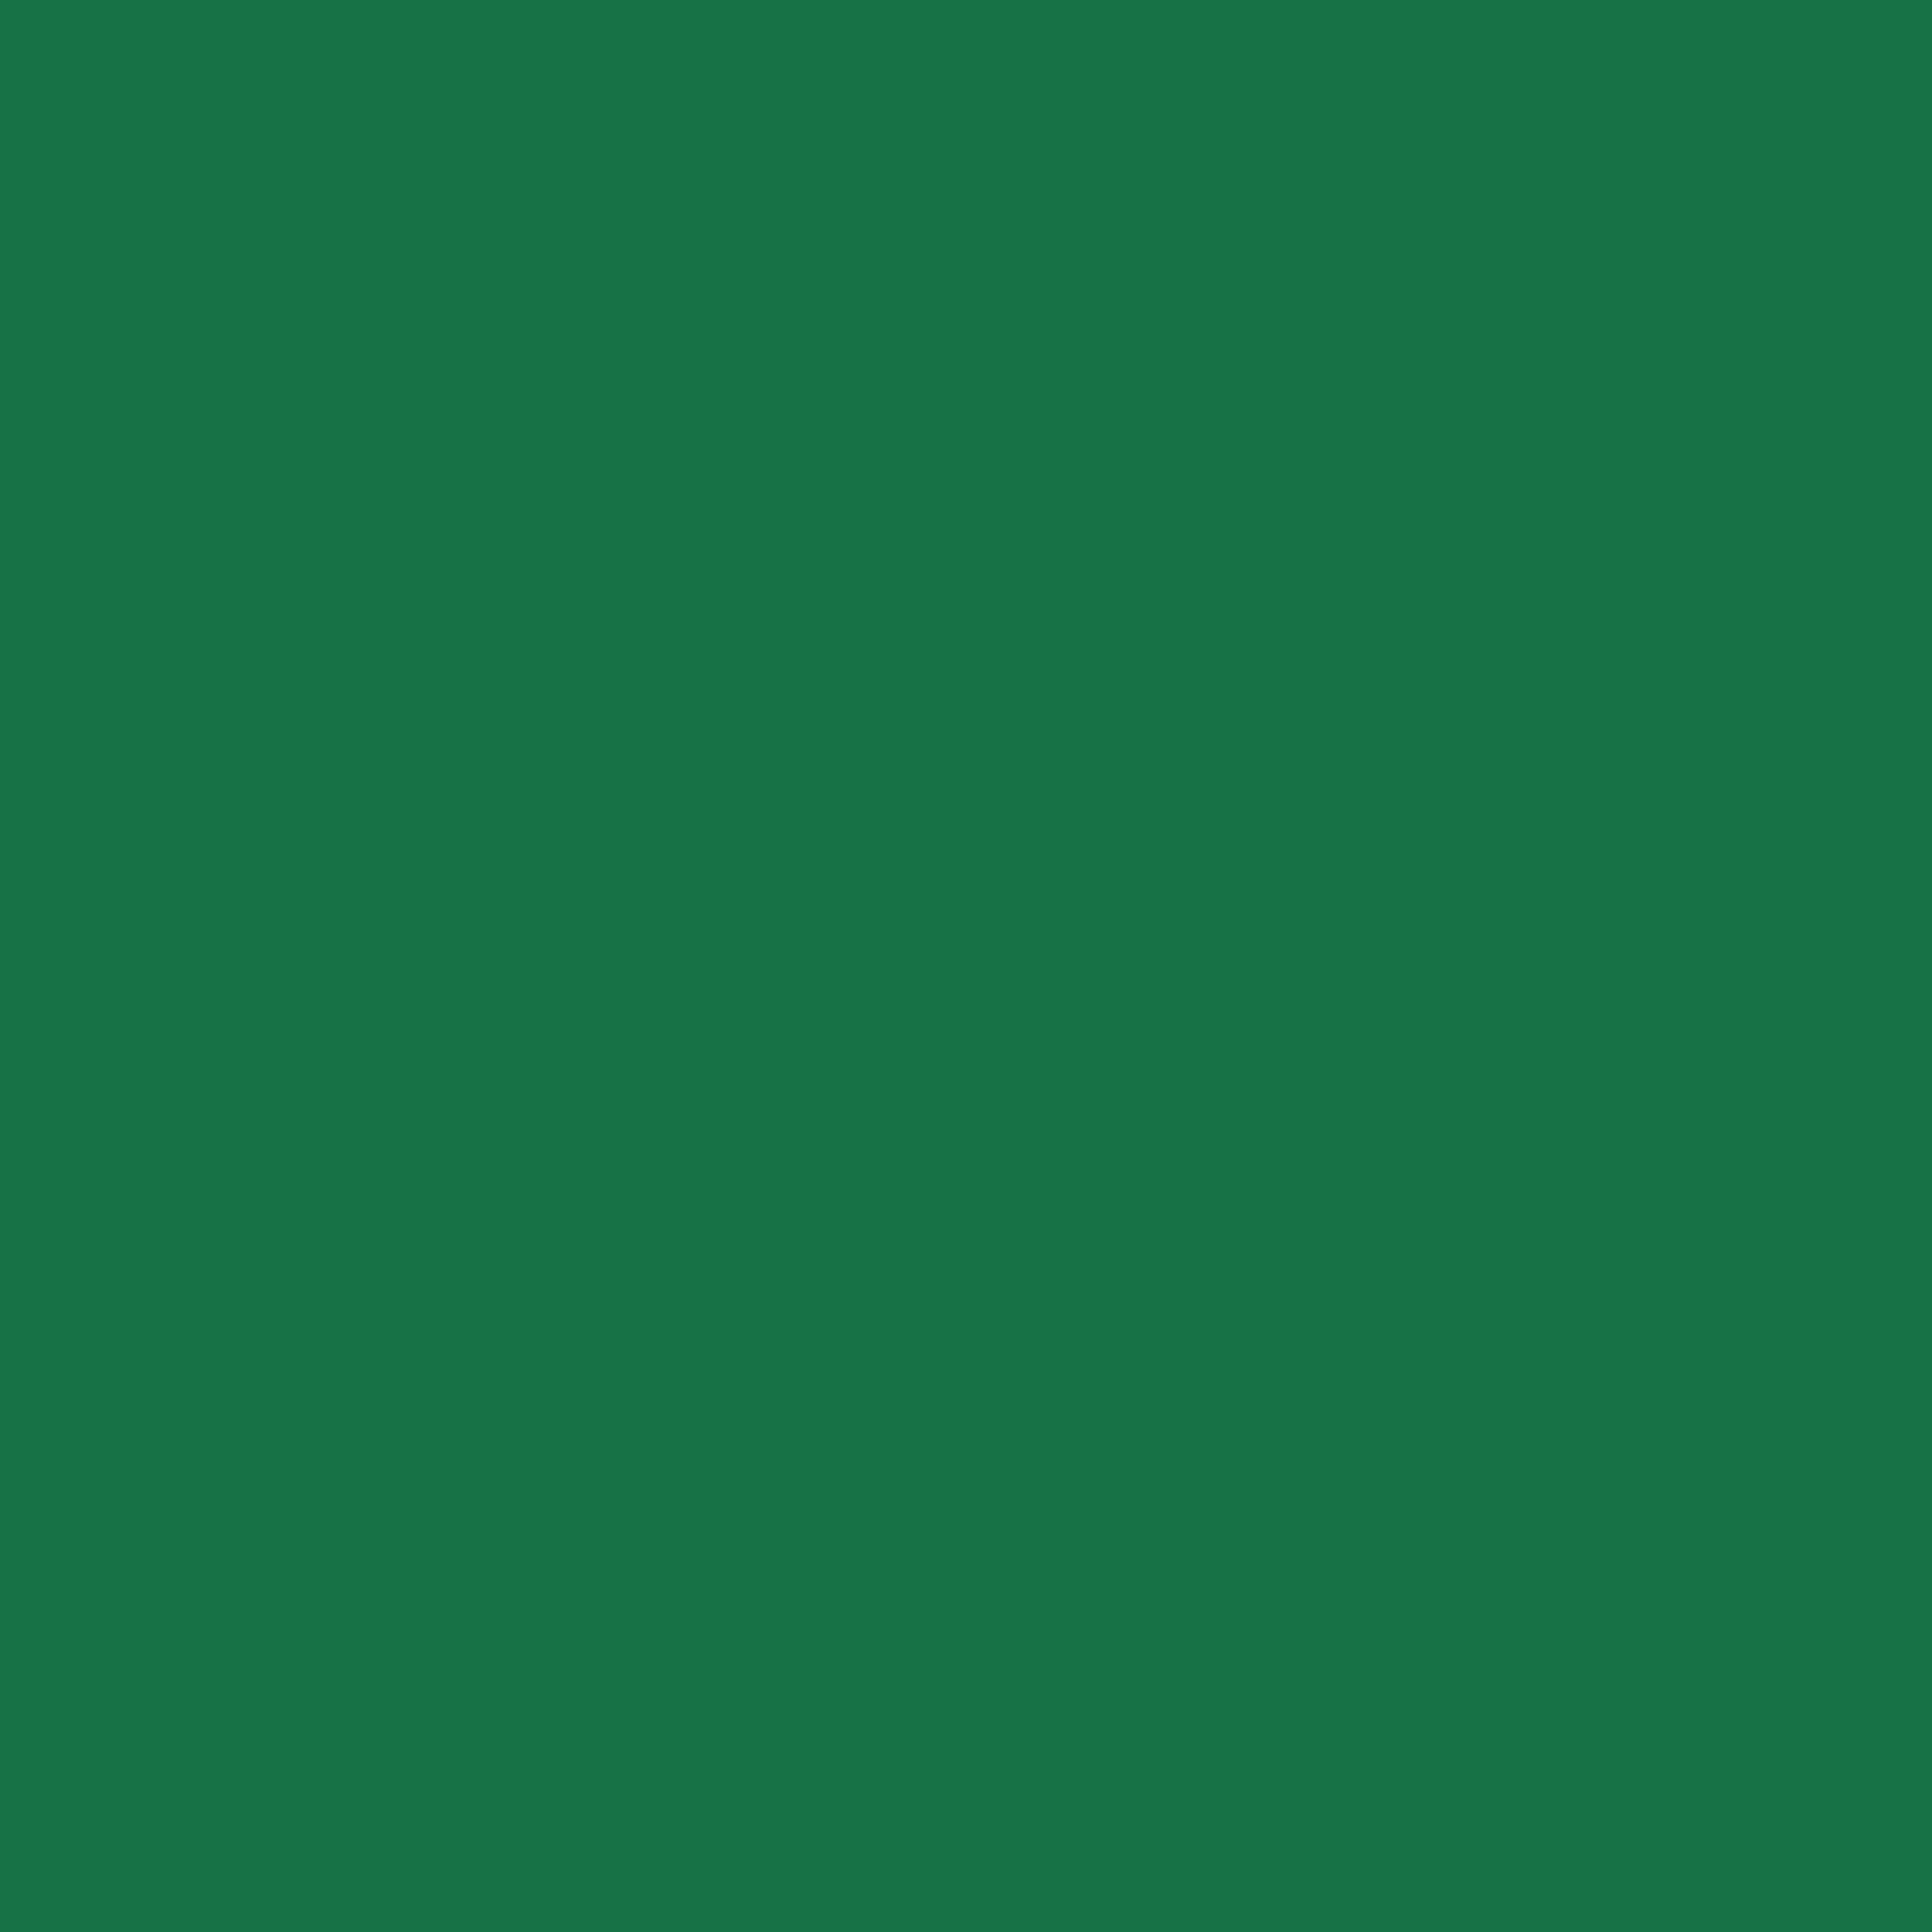 2048x2048 Dark Spring Green Solid Color Background